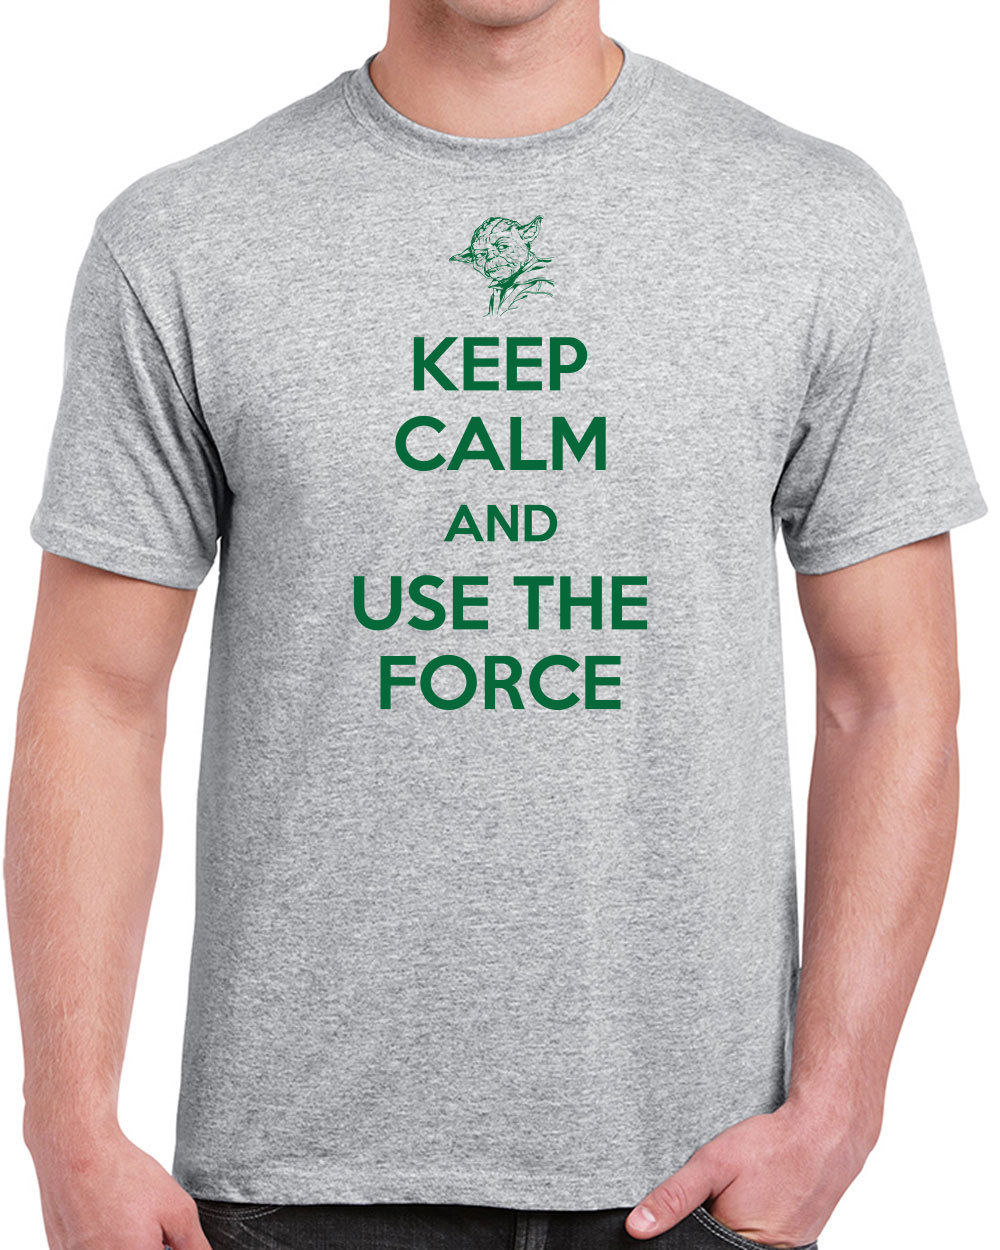 T Shirts With Sayings Crew Neck Graphic Short Sleeve Keep Calm Use The Force Yoda Jedi Star Mens T Shirts